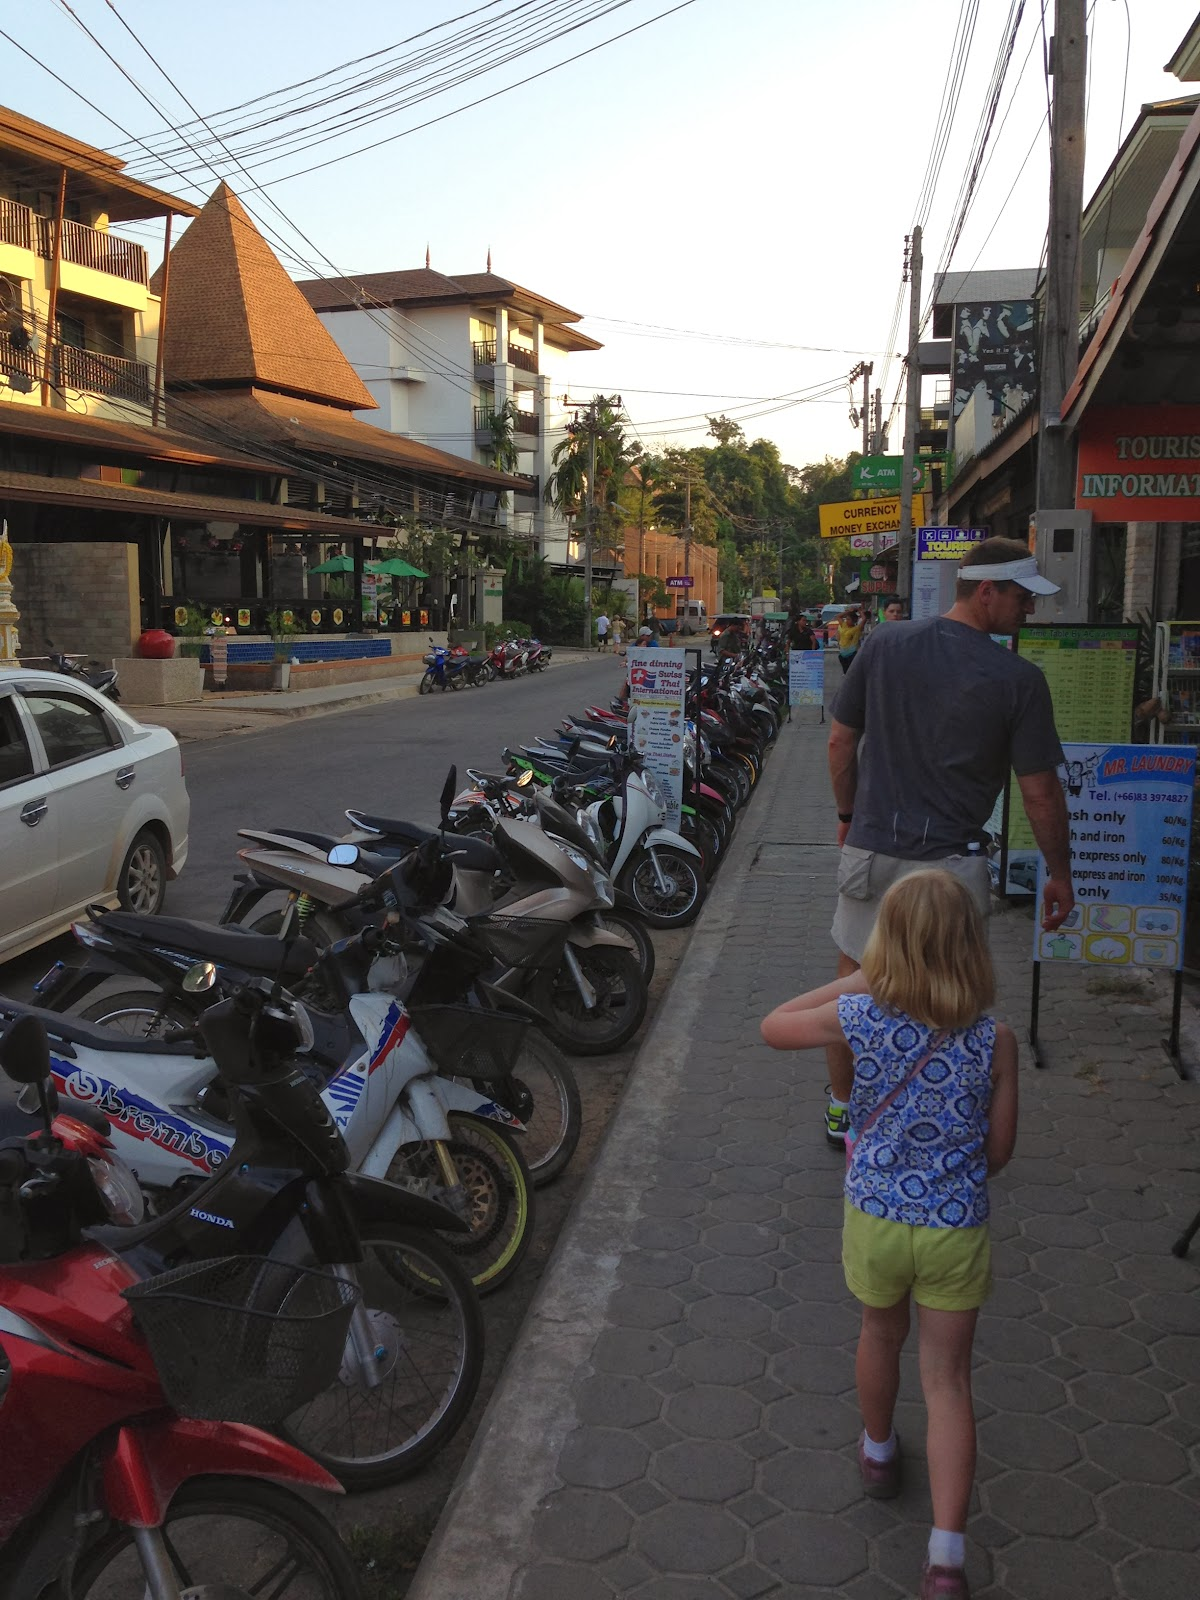 "<a href=""http://vionm.com/"">Thailand</a> <a href=""http://vionm.com/things-to-do-in-bangkok-thailand/thailandhoneymoon-explore-the-beauty-of-koh-samui/"">Beach</a>: We're Stranded!"